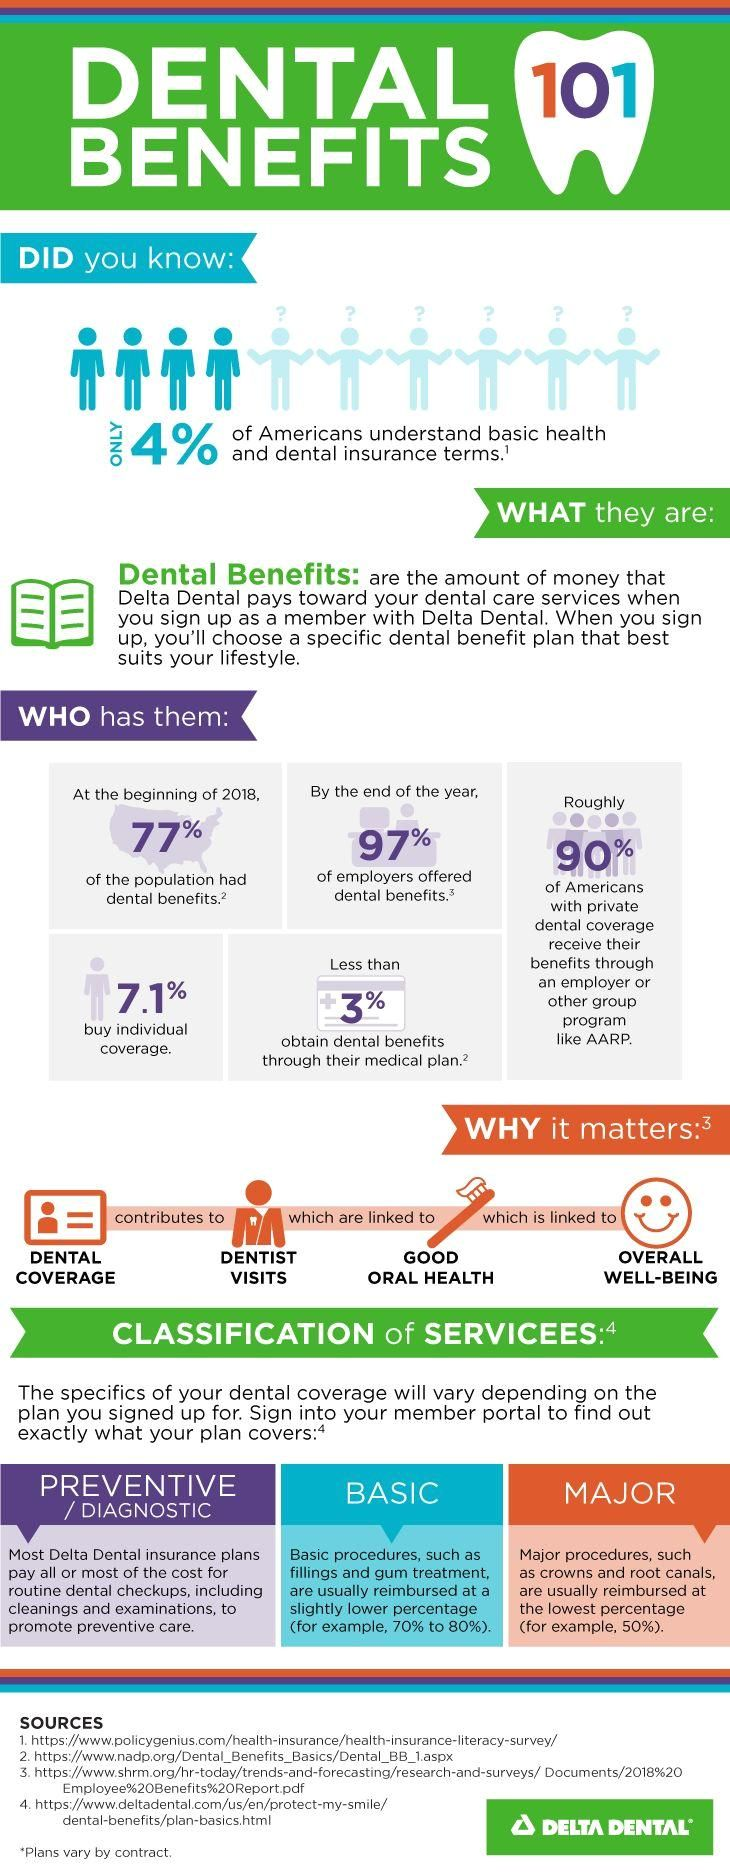 educationalinfographic You may think of insurance as a